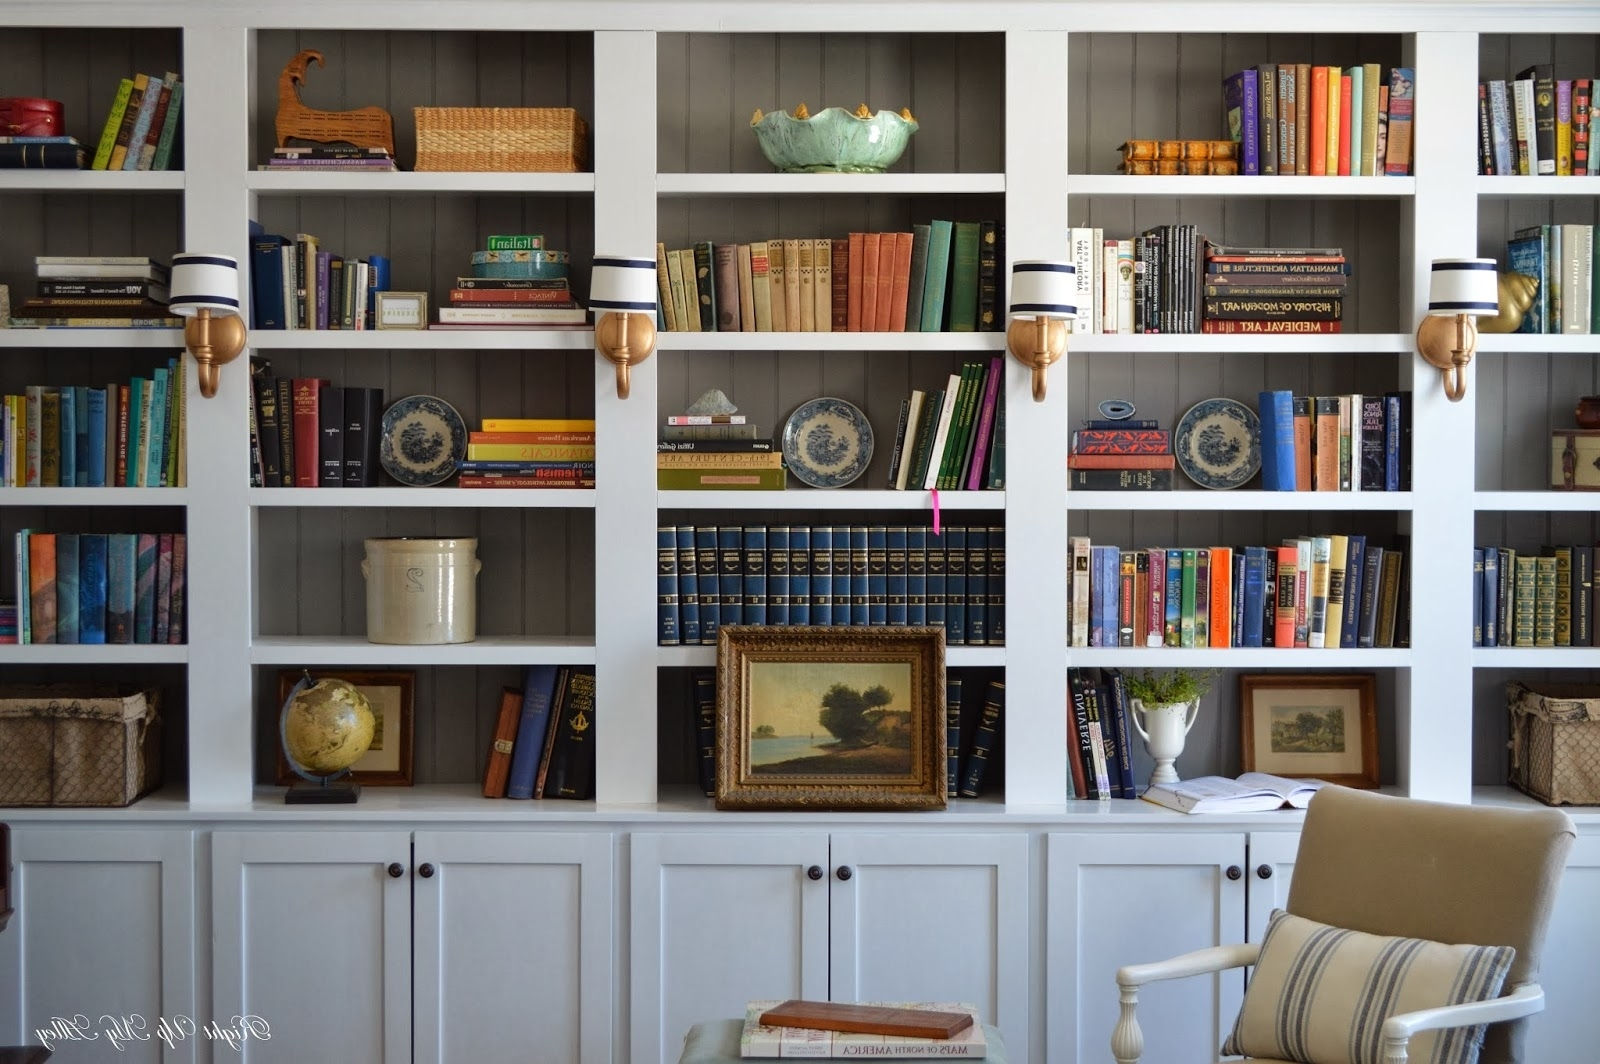 Right Up My Alley: How We Built Our Library Bookshelves Regarding 2018 Library Wall Bookshelves (View 4 of 15)